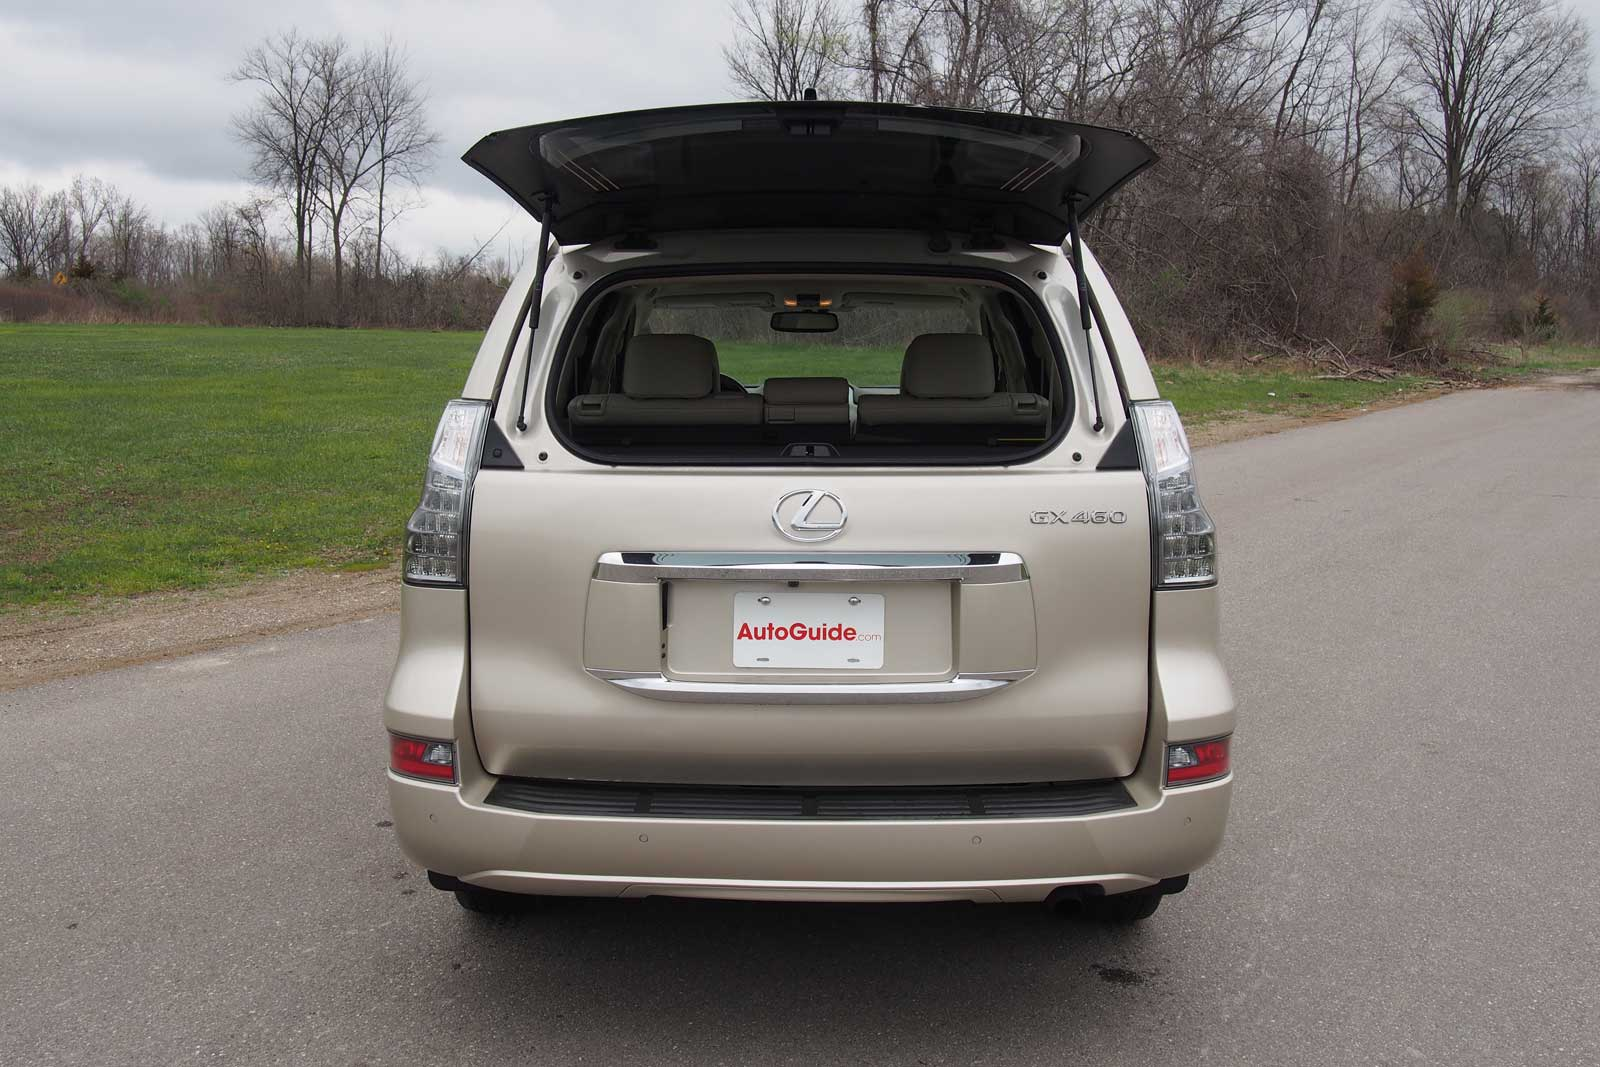 2016 Lexus GX 460 Review: Curbed with Craig Cole - AutoGuide com